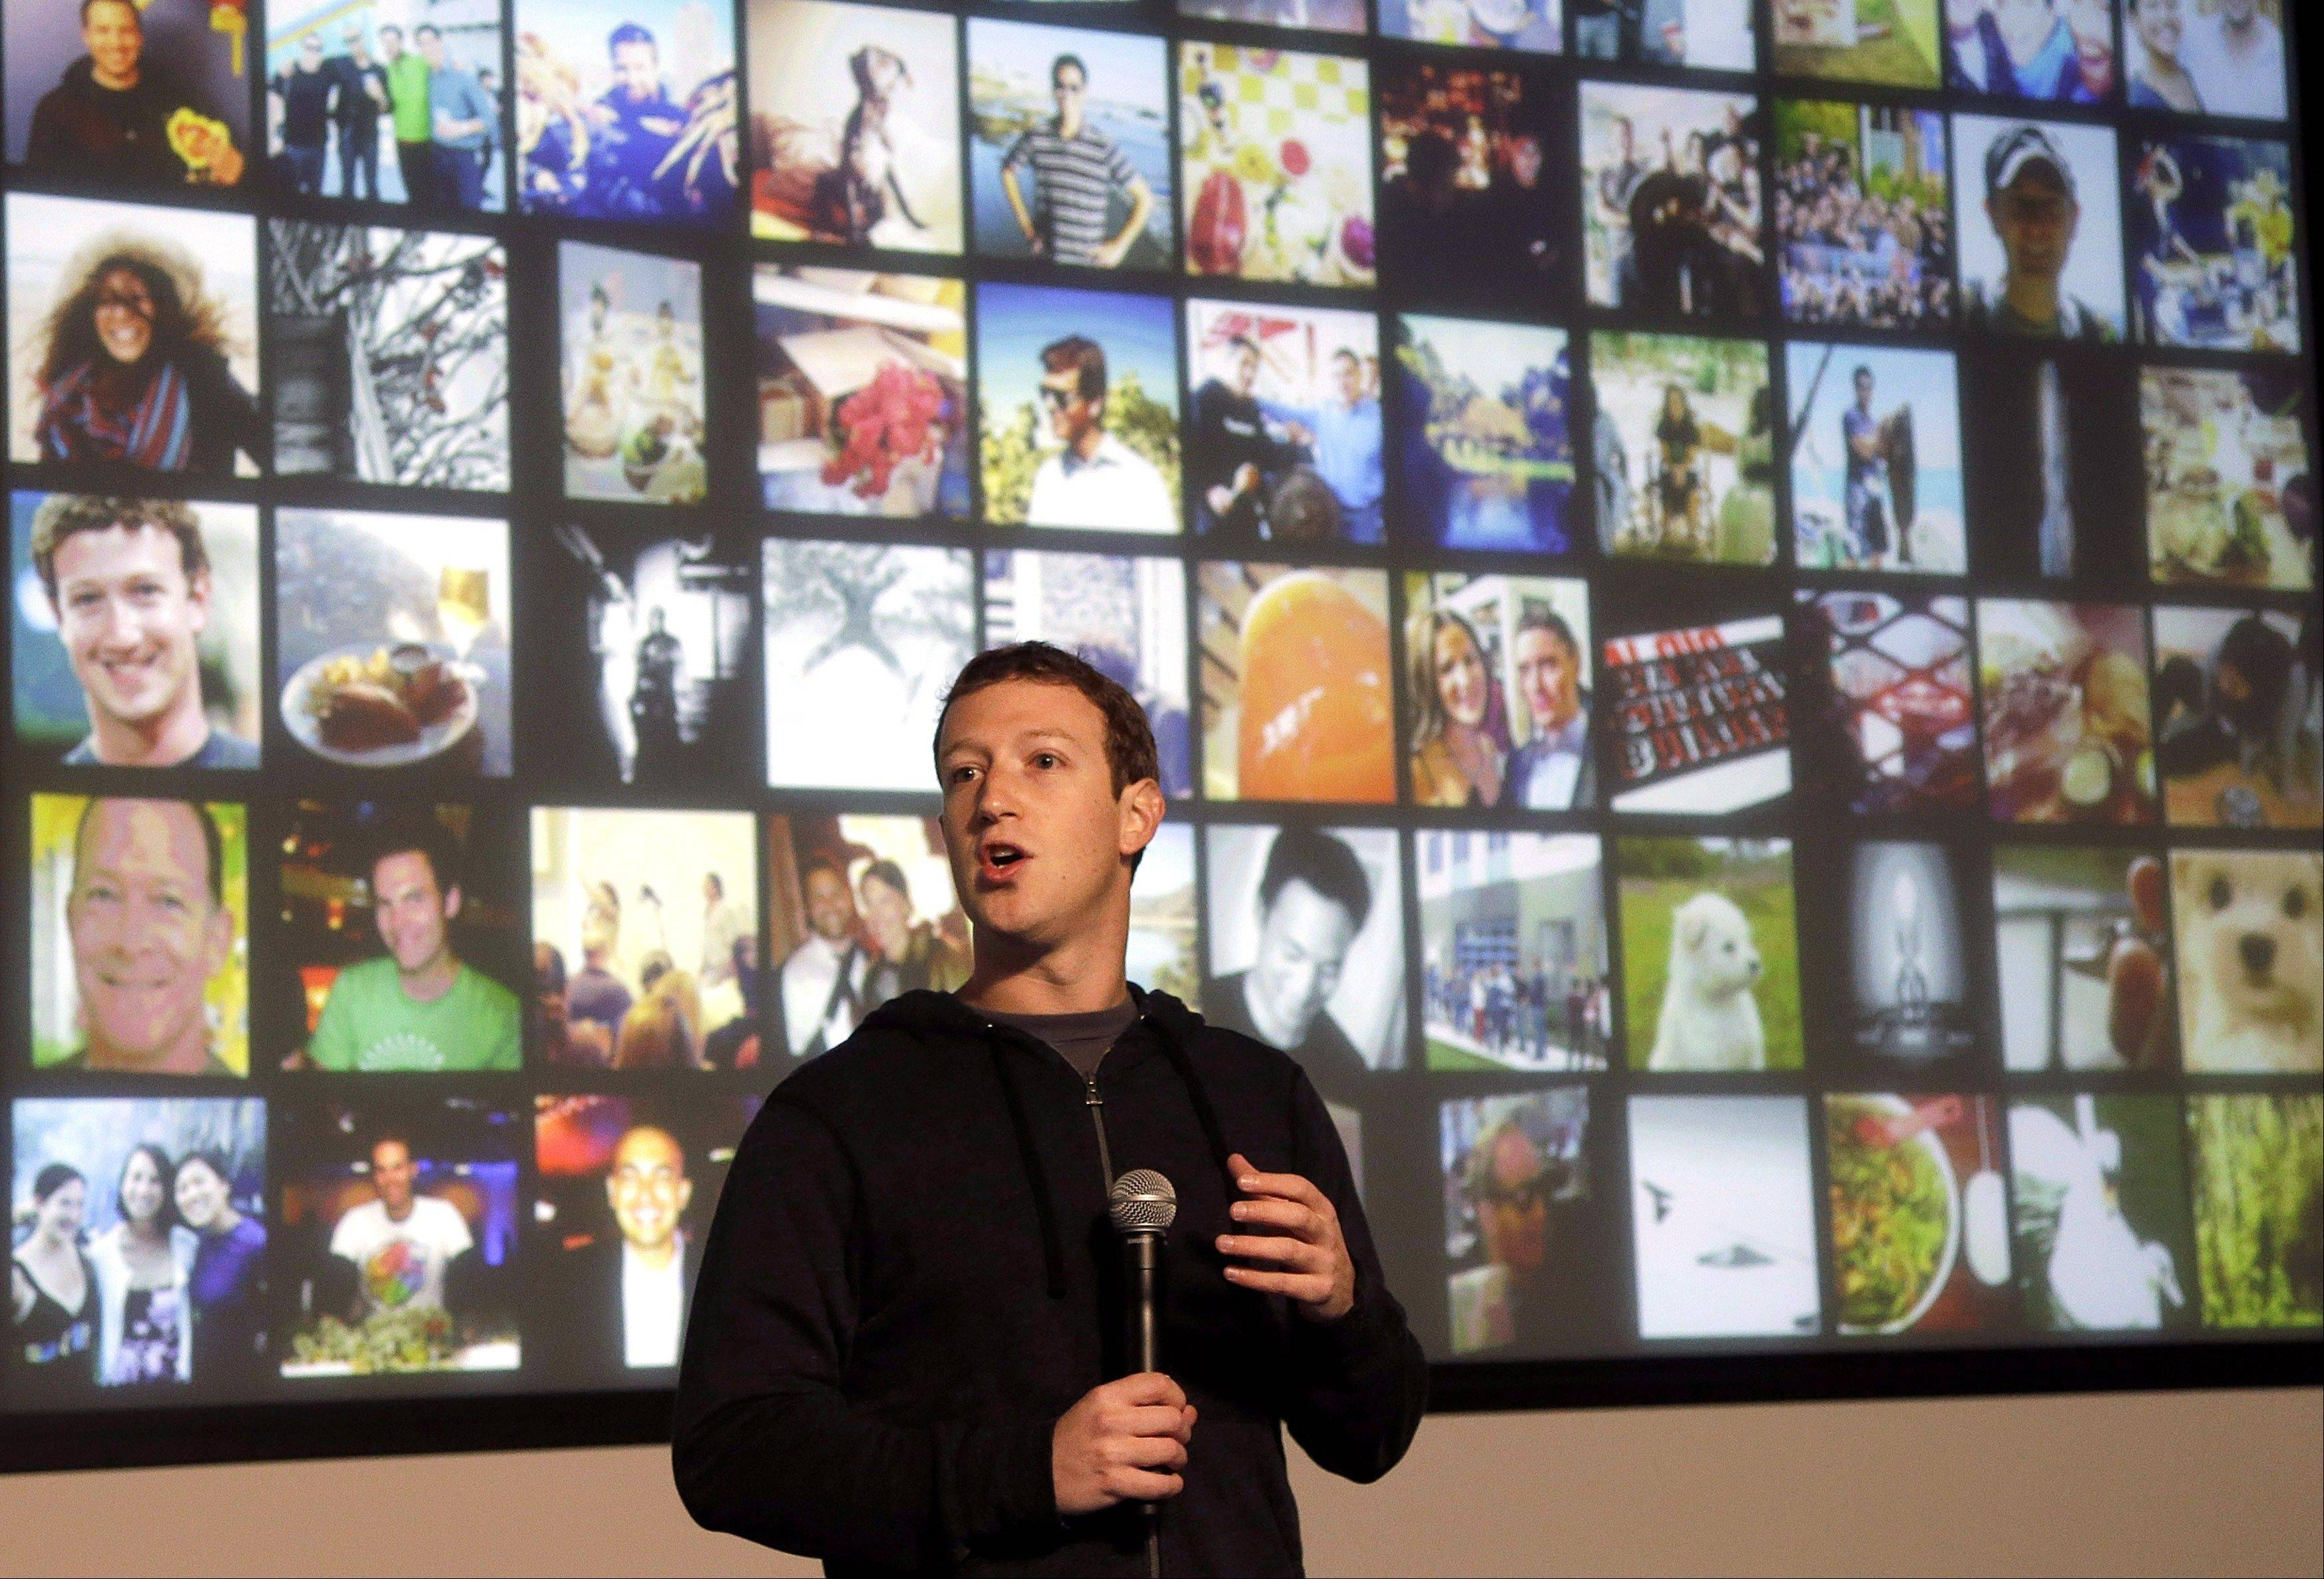 Facebook CEO Mark Zuckerberg speaks at Facebook headquarters in Menlo Park, Calif., Jan. 15. Facebook reported higher earnings than expected on Wednesday.